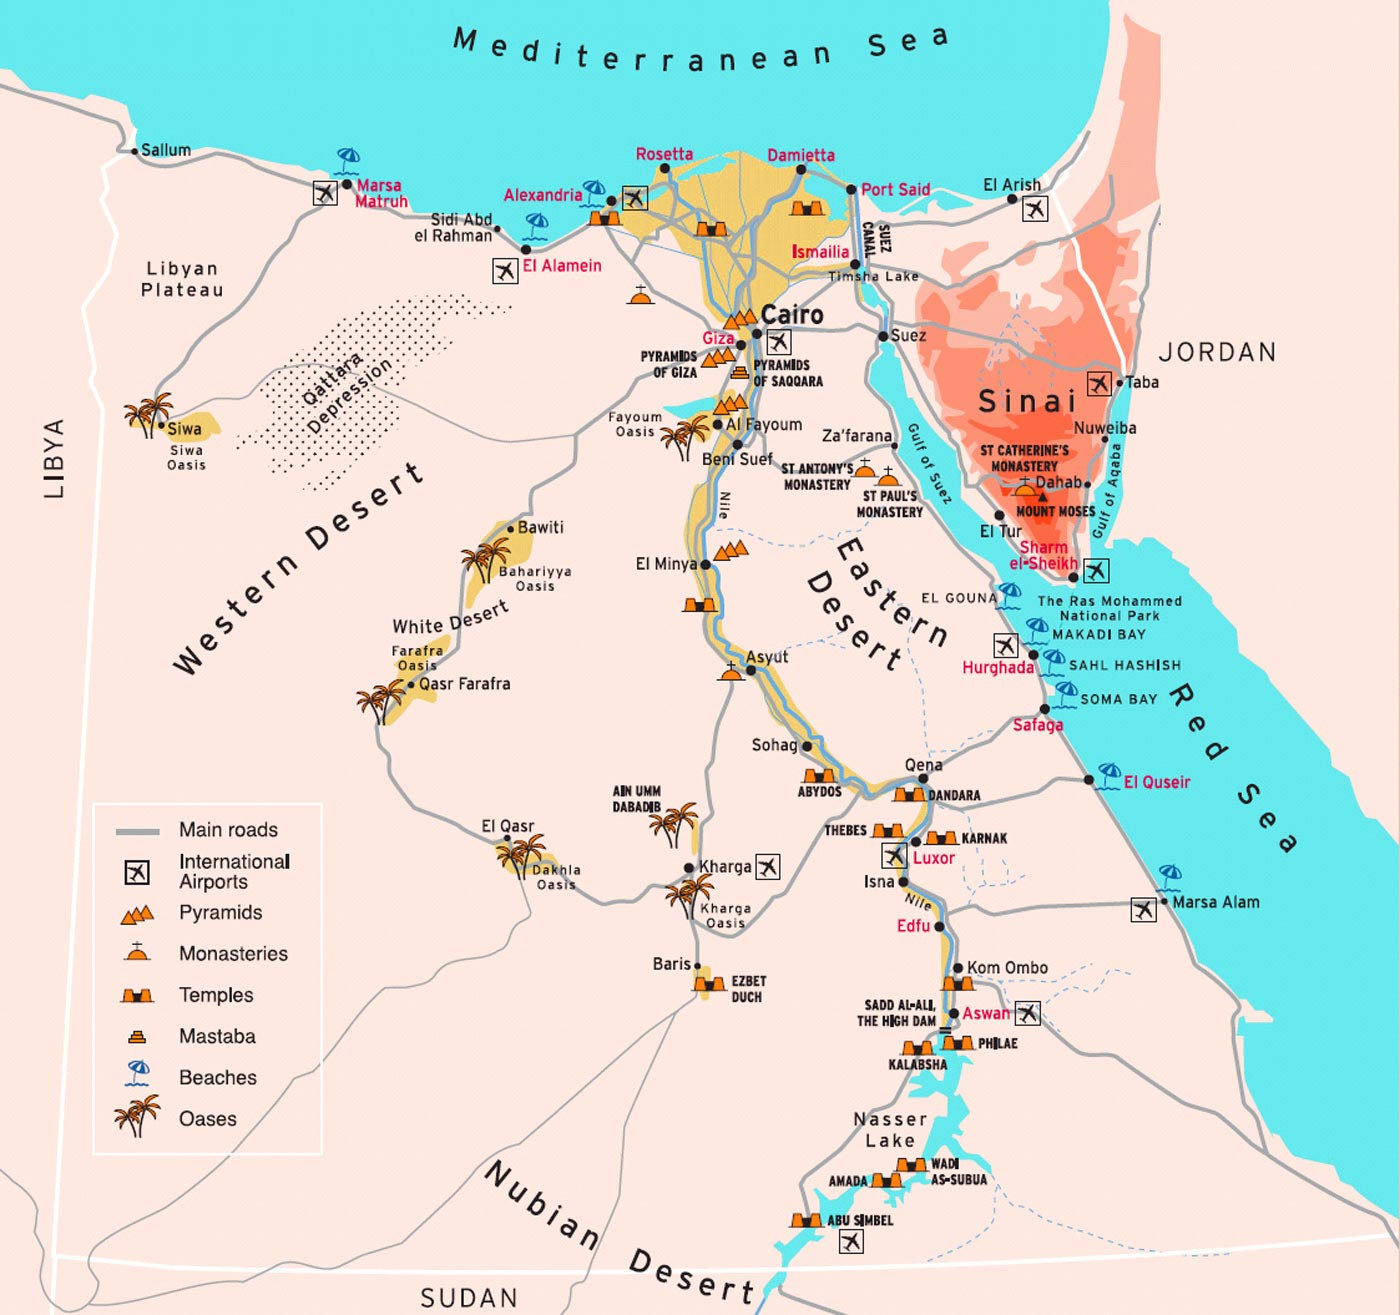 Egypt touristic map showing travel destinations travel around egypt touristic map showing travel destinations gumiabroncs Image collections